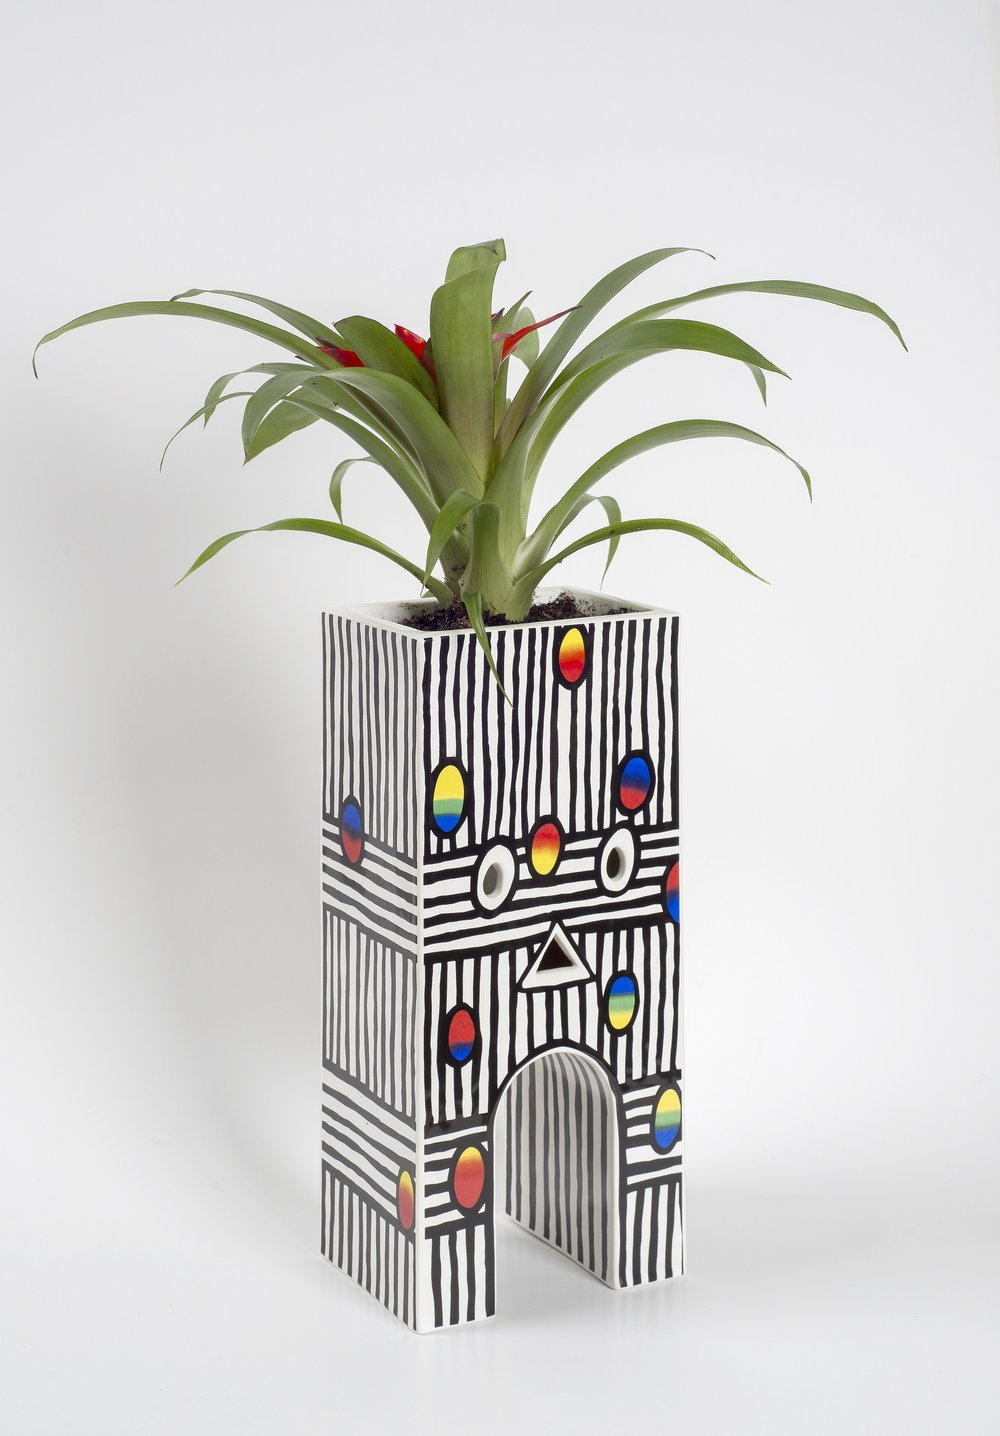 Joanne Tatham and Tom O'Sullivan  The Reiterative Grimace (planter)  2016 Ceramic cast 12h x 5 ½w x 3 ¾d in JTTO004